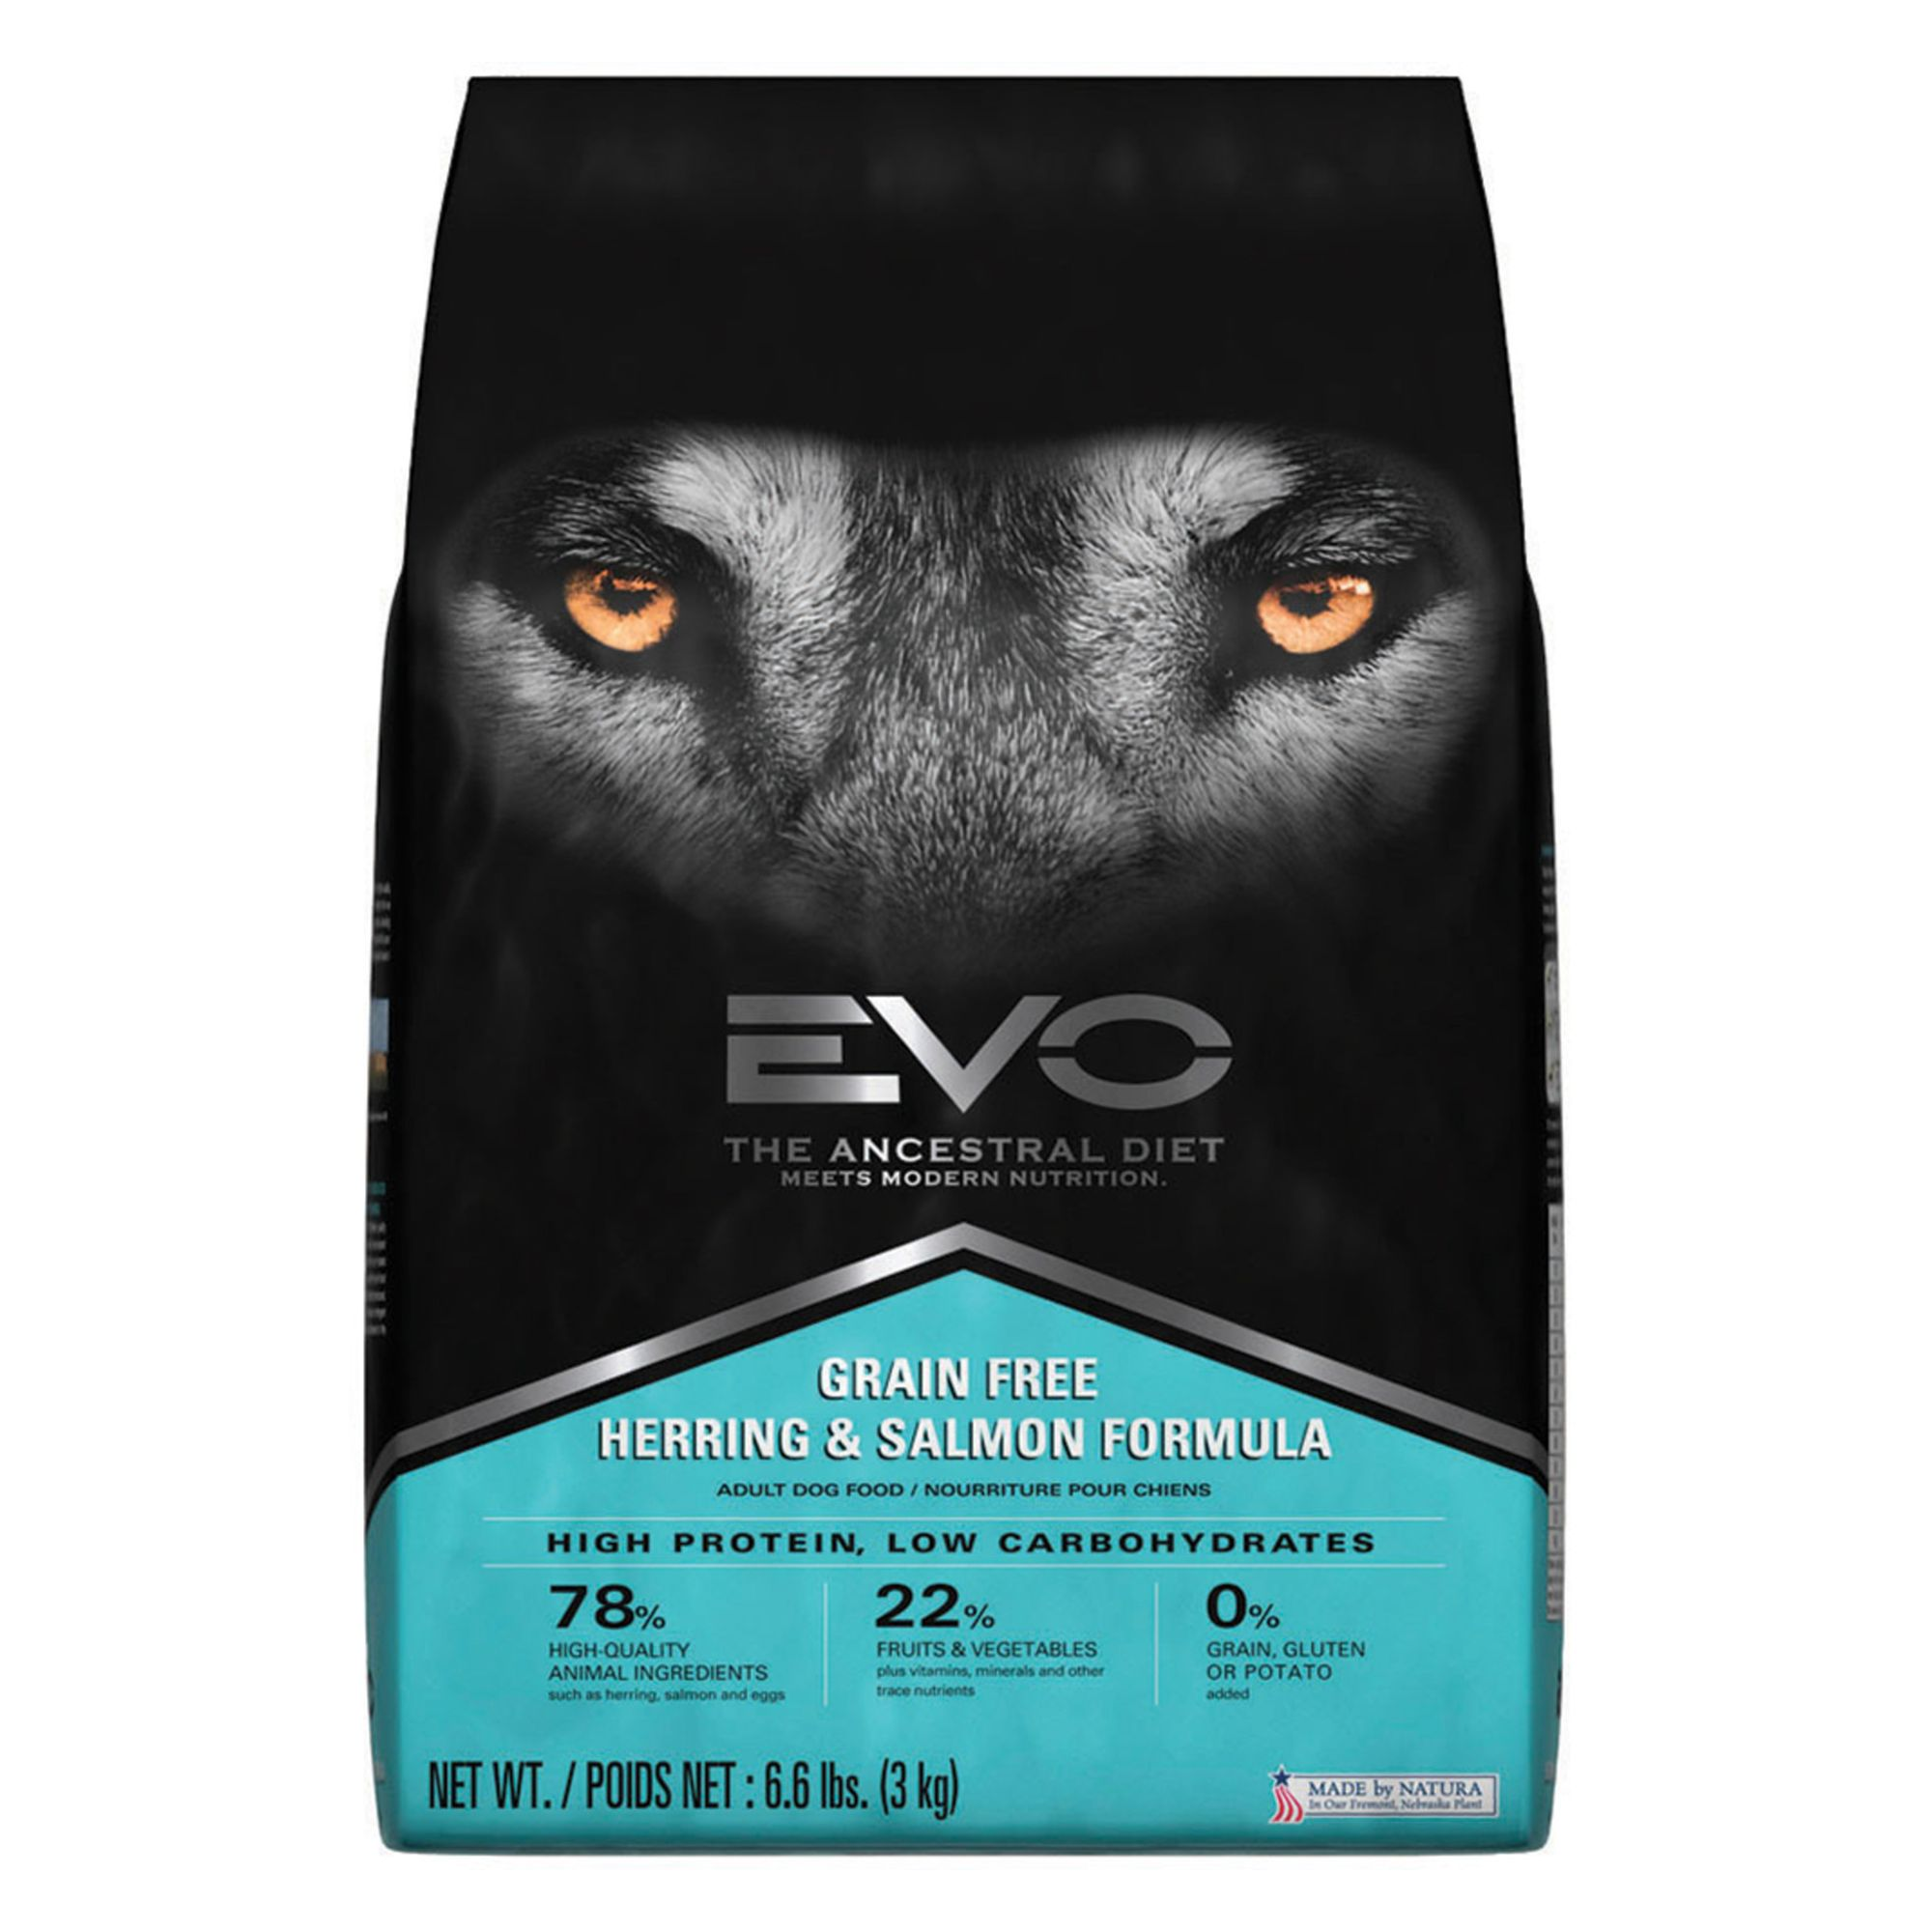 EVO Adult Dog Food - Grain Free, Gluten Free, Herring and Salmon size: 6.6 Lb 5268860